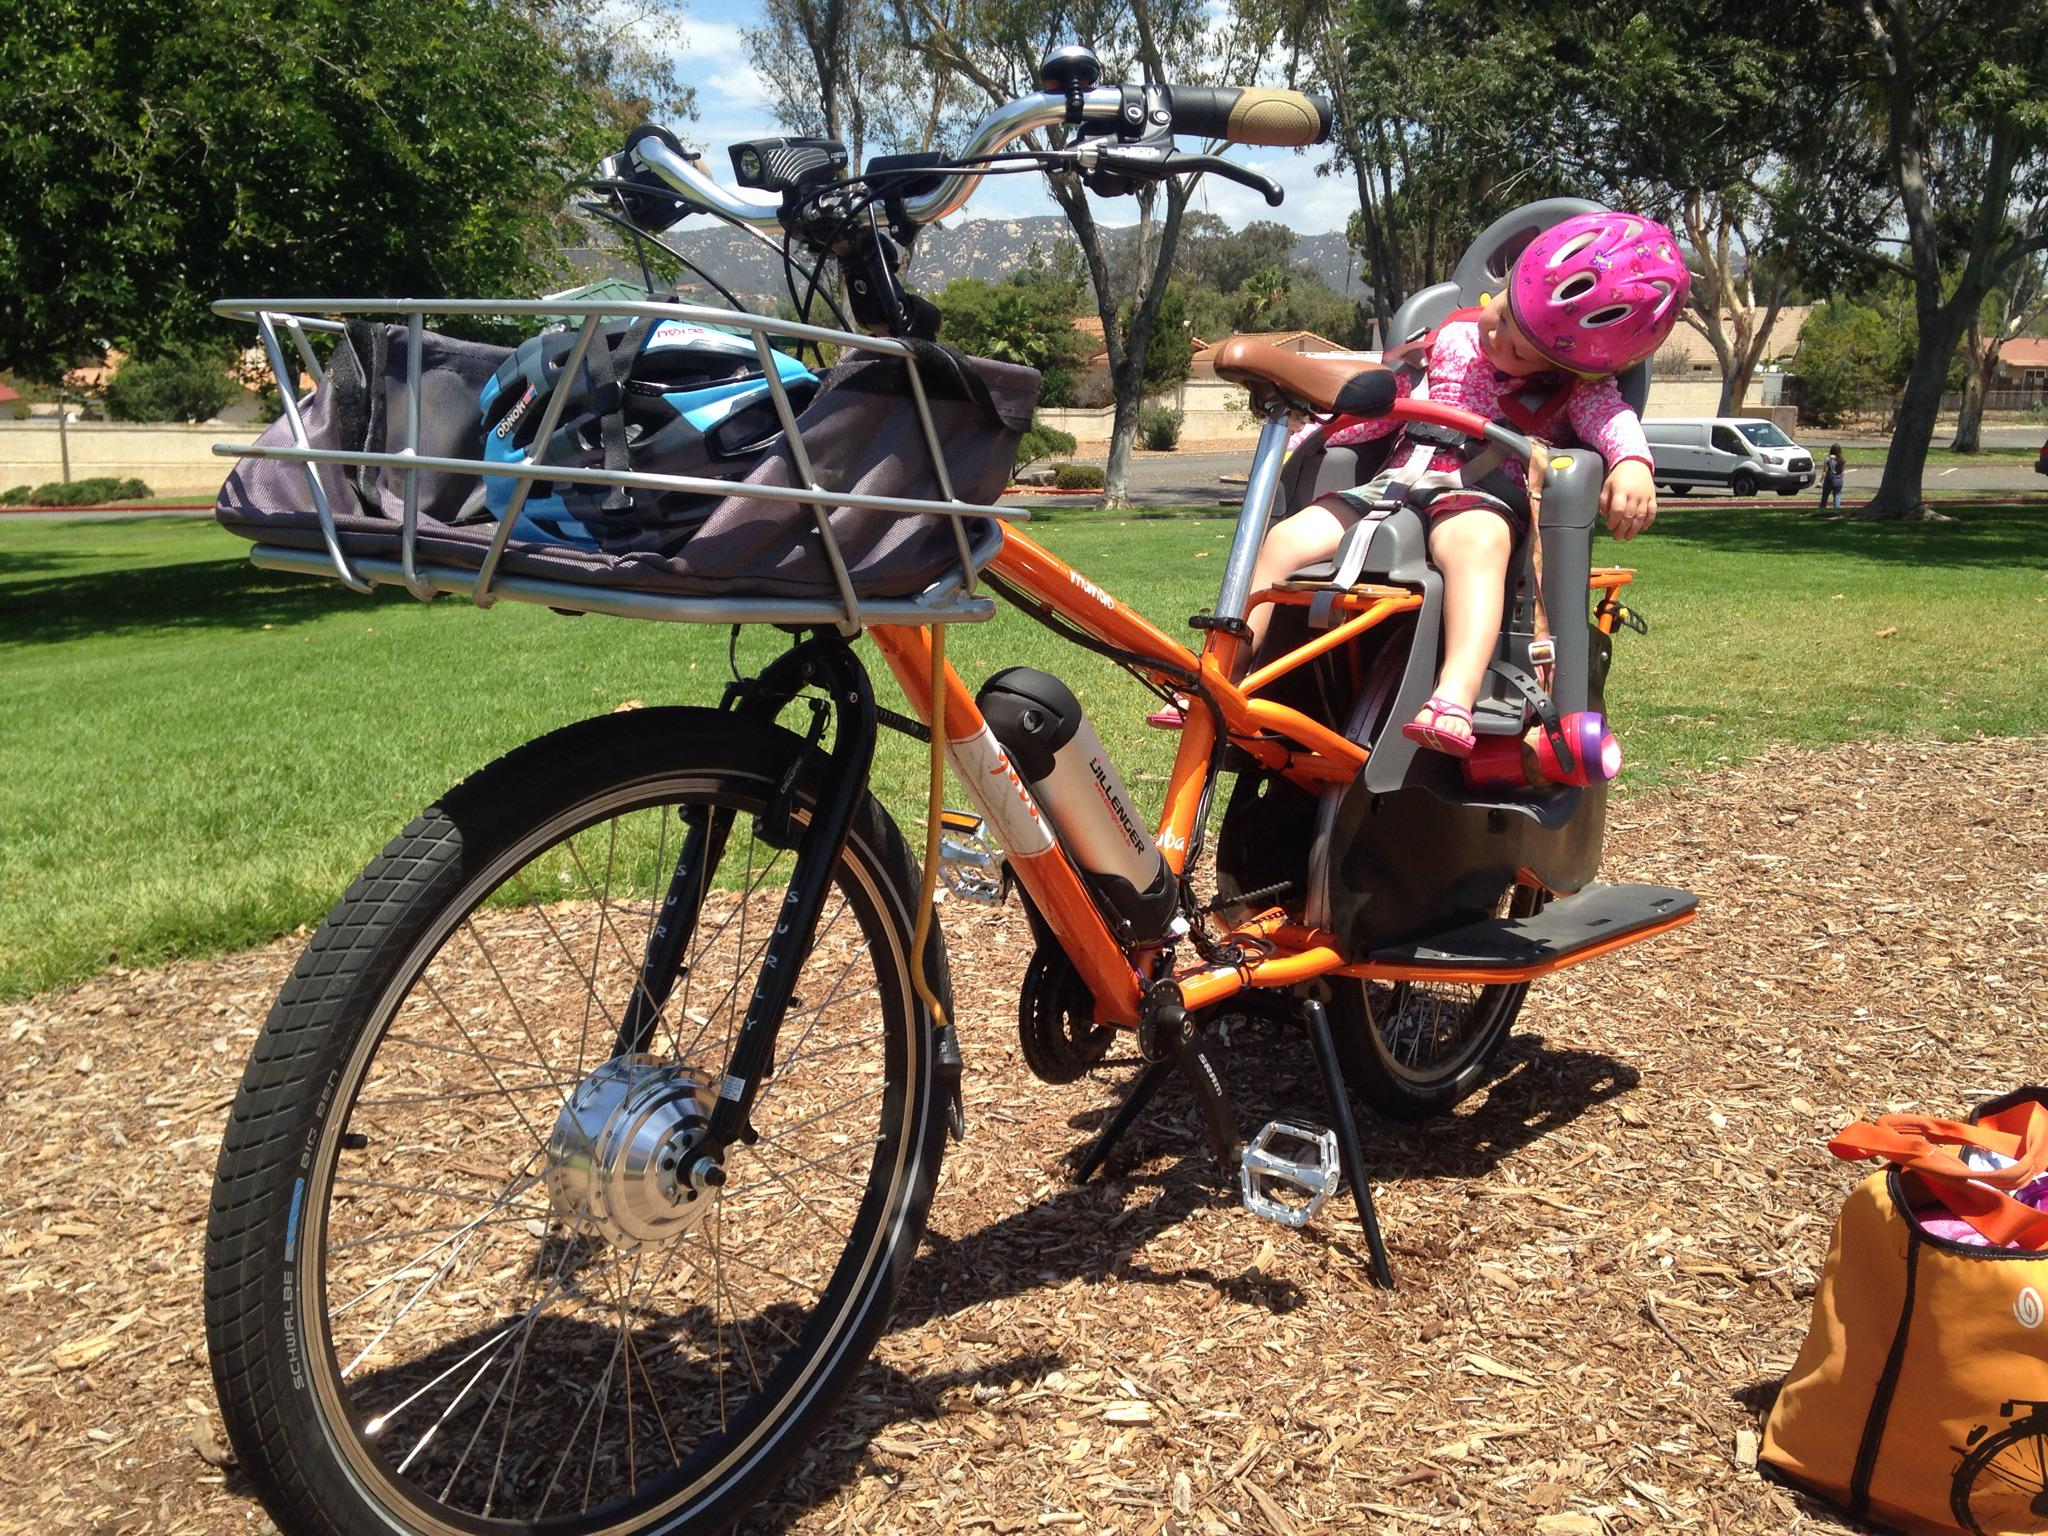 RT @gest24: Guess someone was comfy on their ride to the pool today. @YubaBicycles http://t.co/r1RCFTt6fD